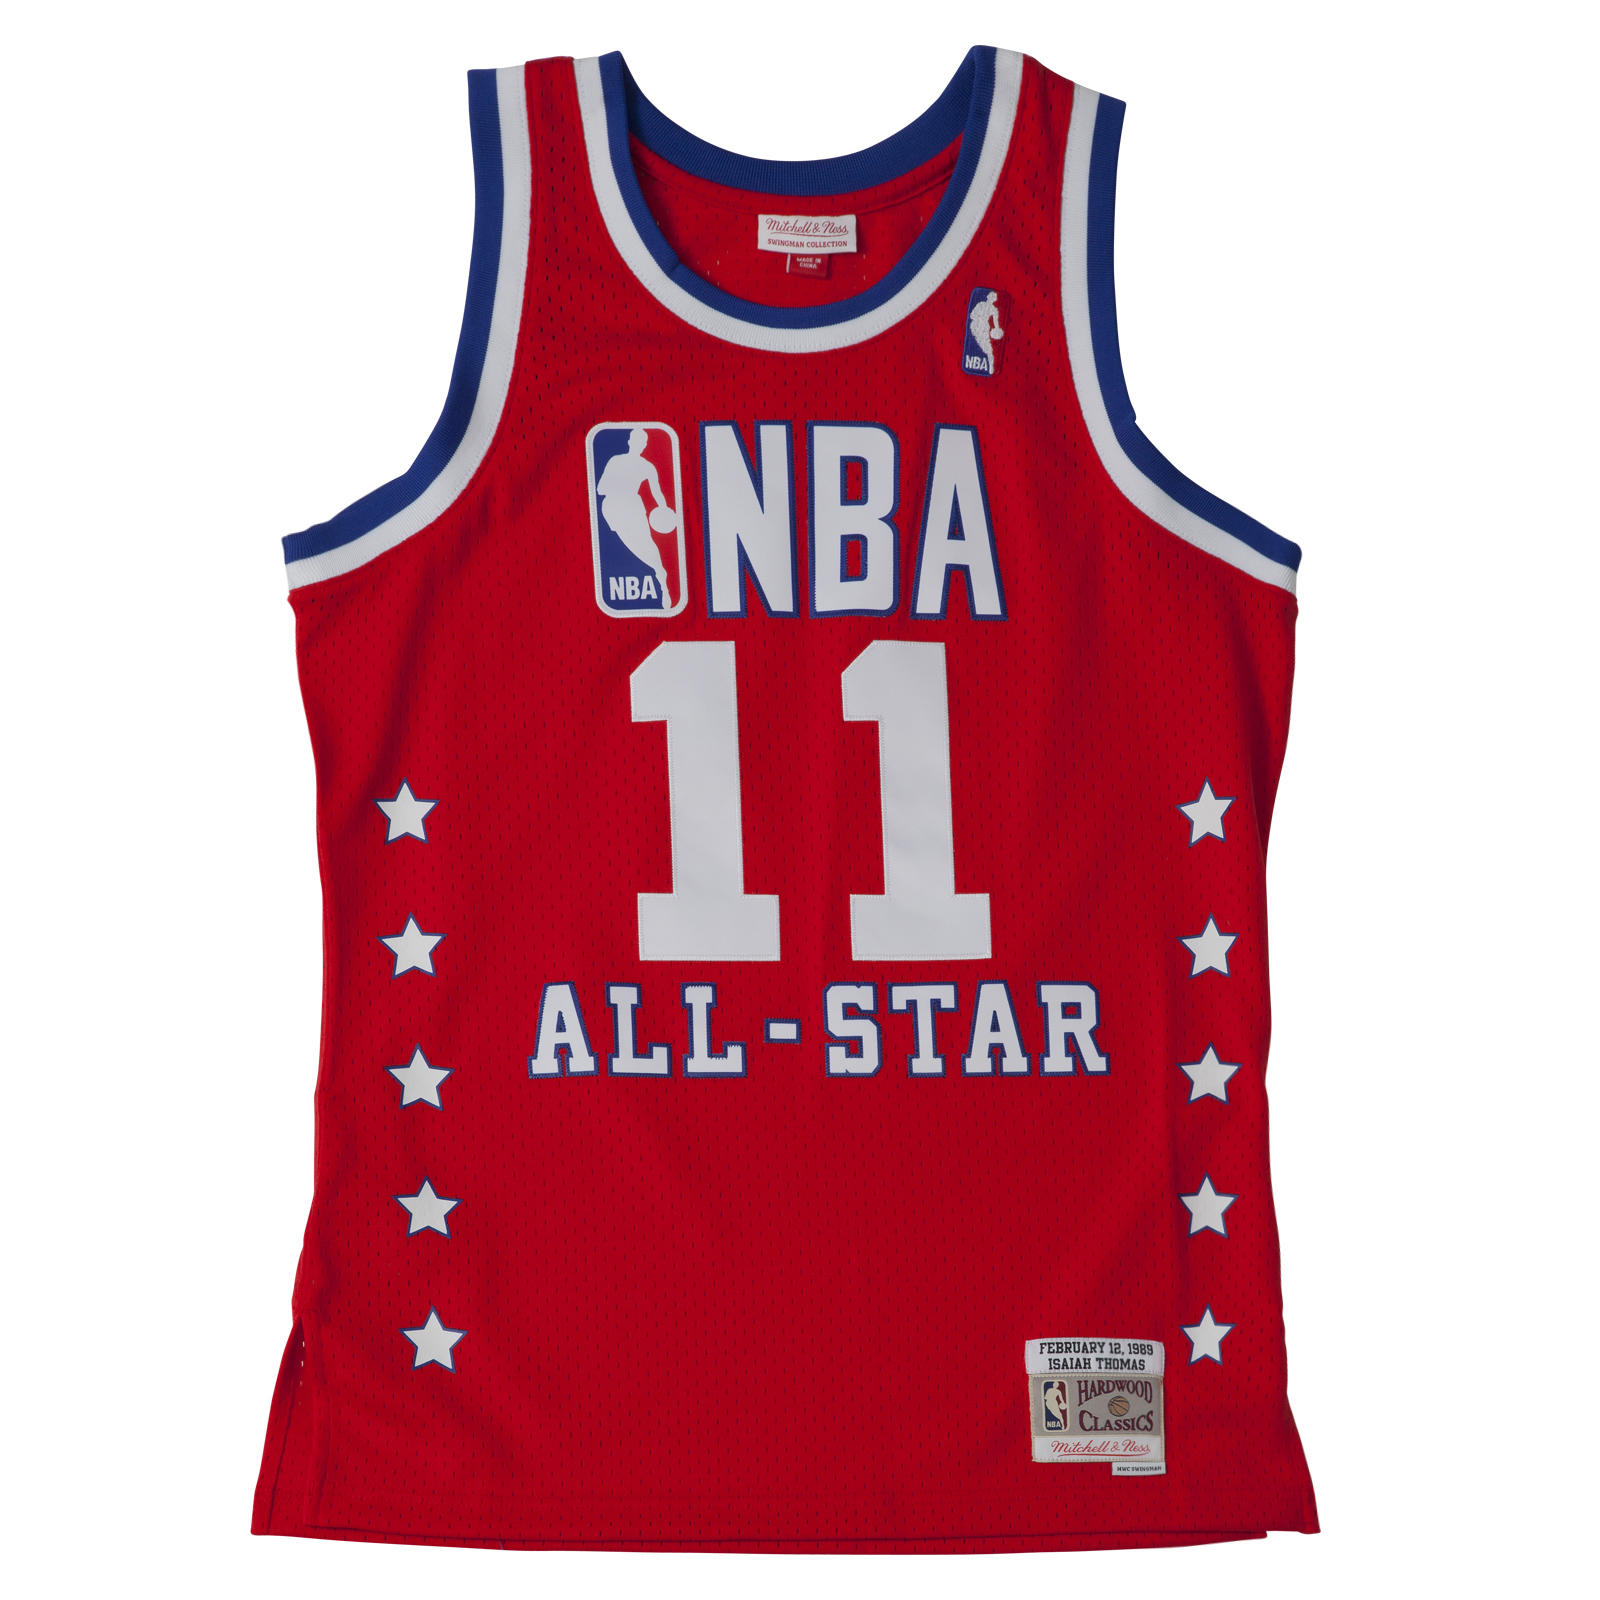 reputable site 327b9 94e21 Mitchell & Ness Nostalgia Co. | NBA All-Star Isiah Thomas ...